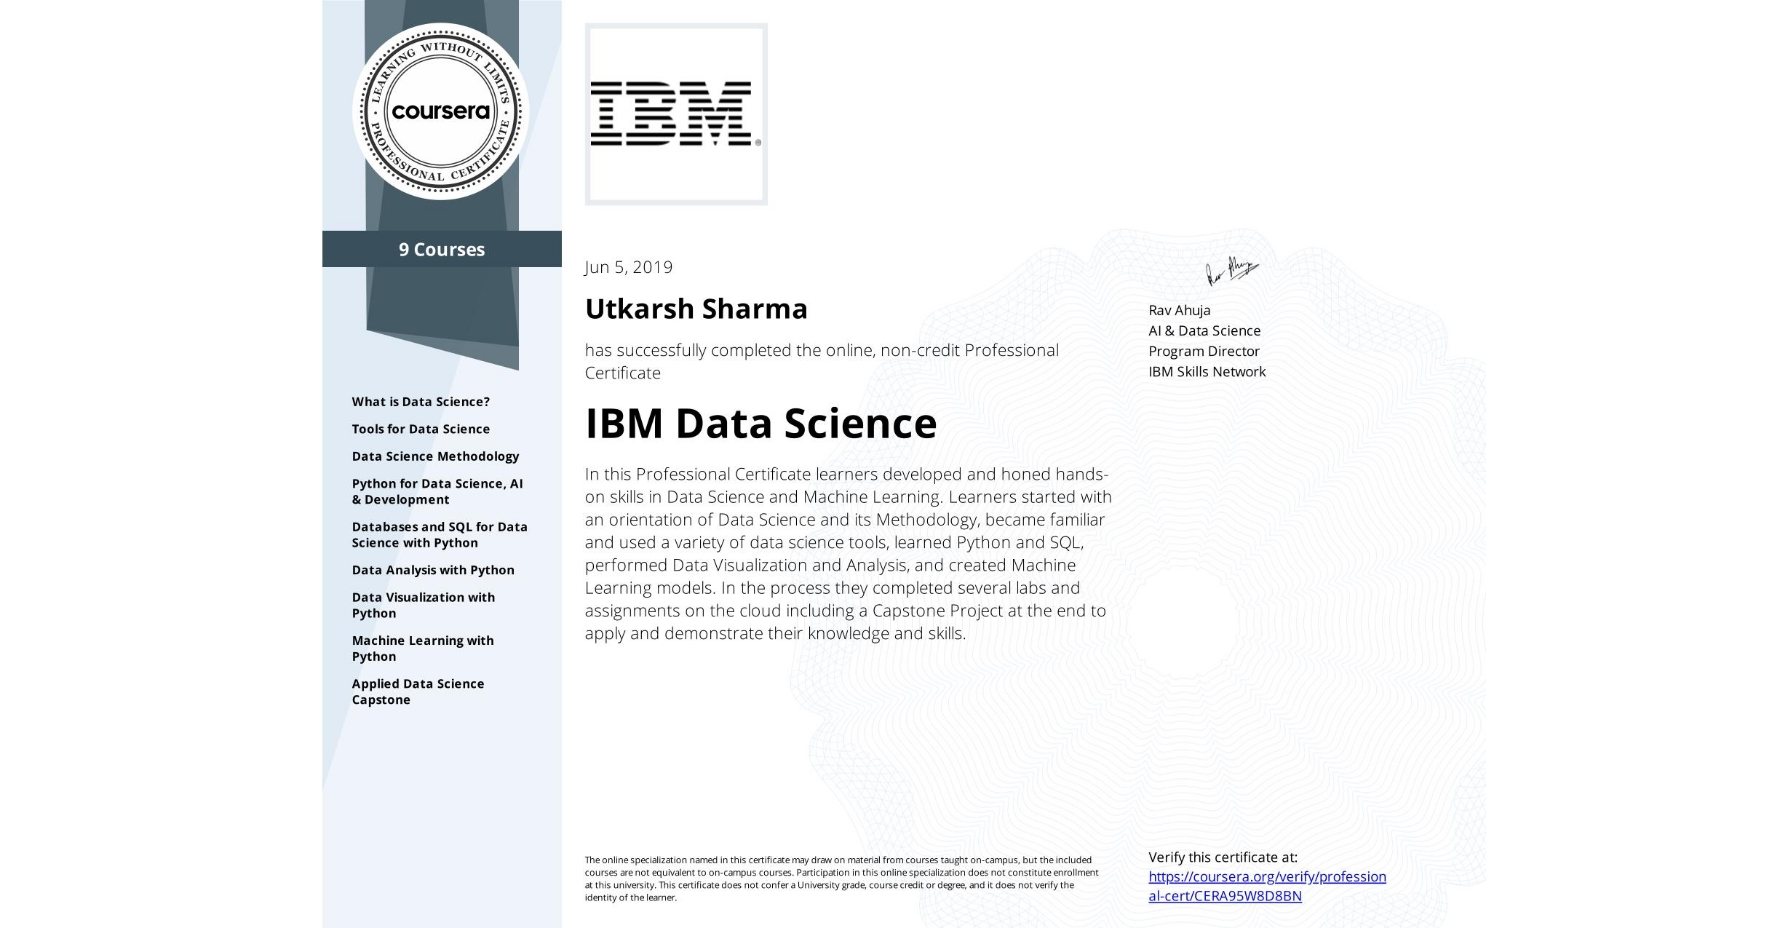 View certificate for Utkarsh Sharma, IBM Data Science, offered through Coursera. In this Professional Certificate learners developed and honed hands-on skills in Data Science and Machine Learning. Learners started with an orientation of Data Science and its Methodology, became familiar and used a variety of data science tools, learned Python and SQL, performed Data Visualization and Analysis, and created Machine Learning models.  In the process they completed several labs and assignments on the cloud including a Capstone Project at the end to apply and demonstrate their knowledge and skills.